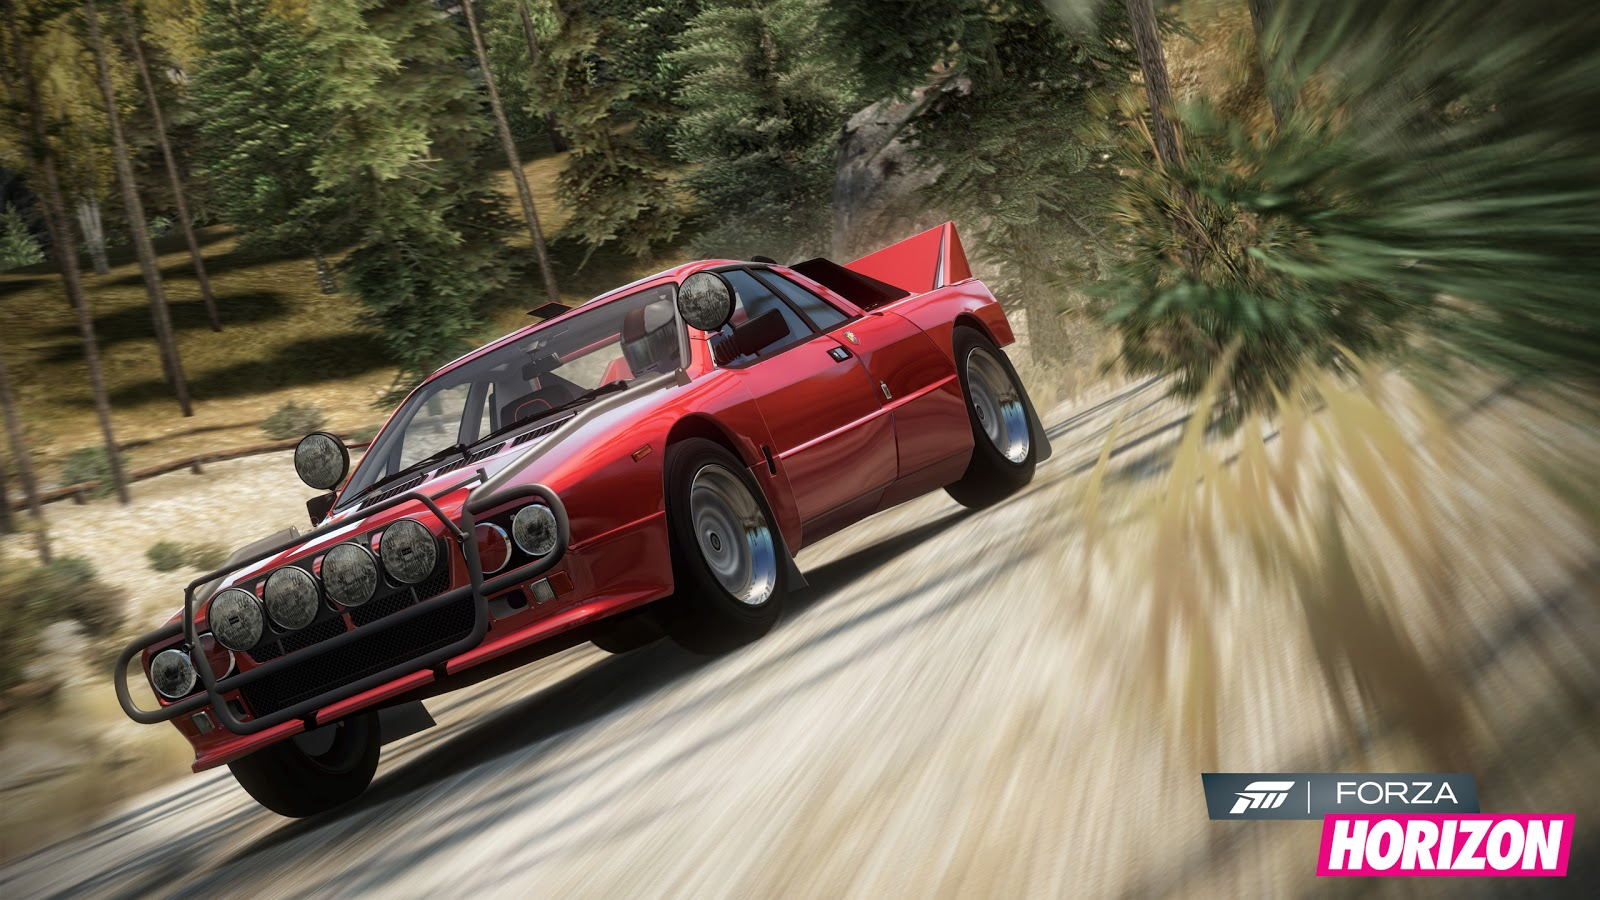 Forza Horizon HD & Widescreen Wallpaper 0.97086522454706